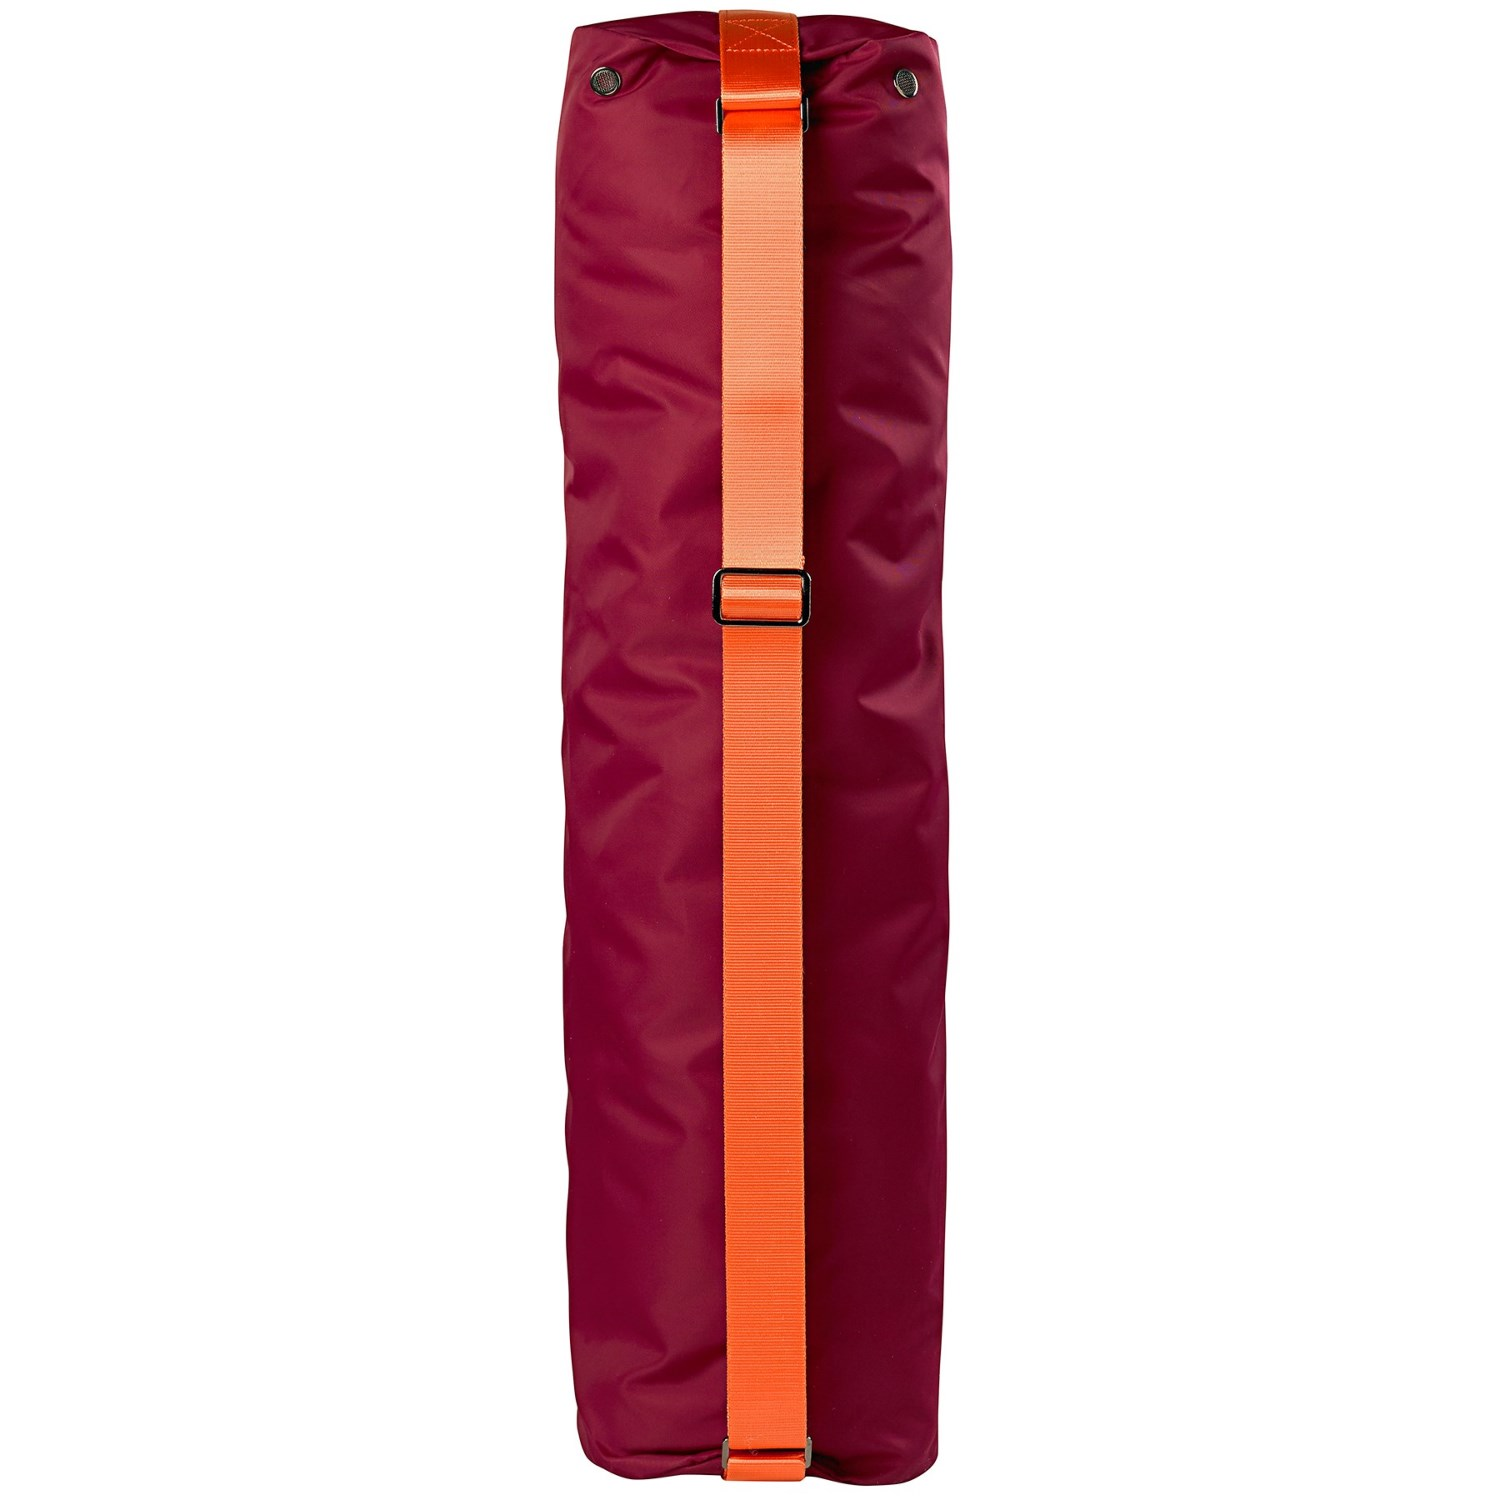 Gaiam High Performance Yoga Mat Bag Save 41